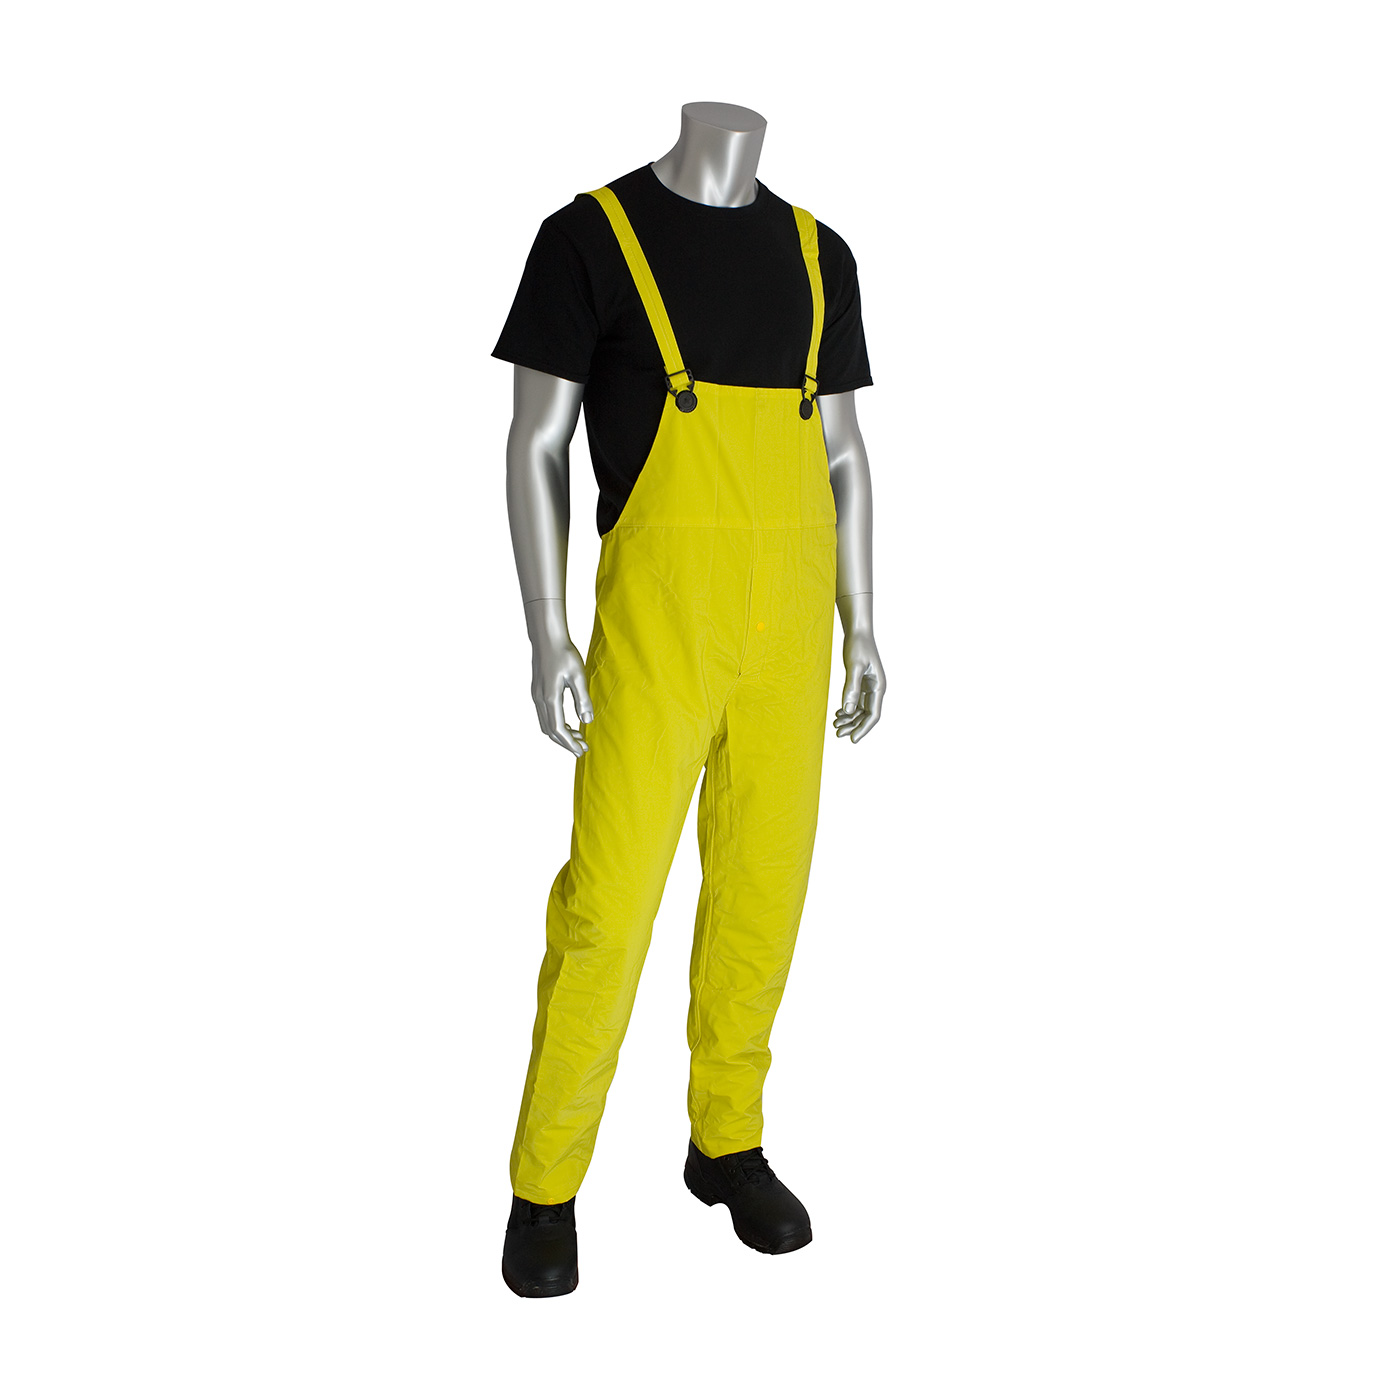 Protective Industrial Products :: Products :: Protective Clothing :: Rainwear